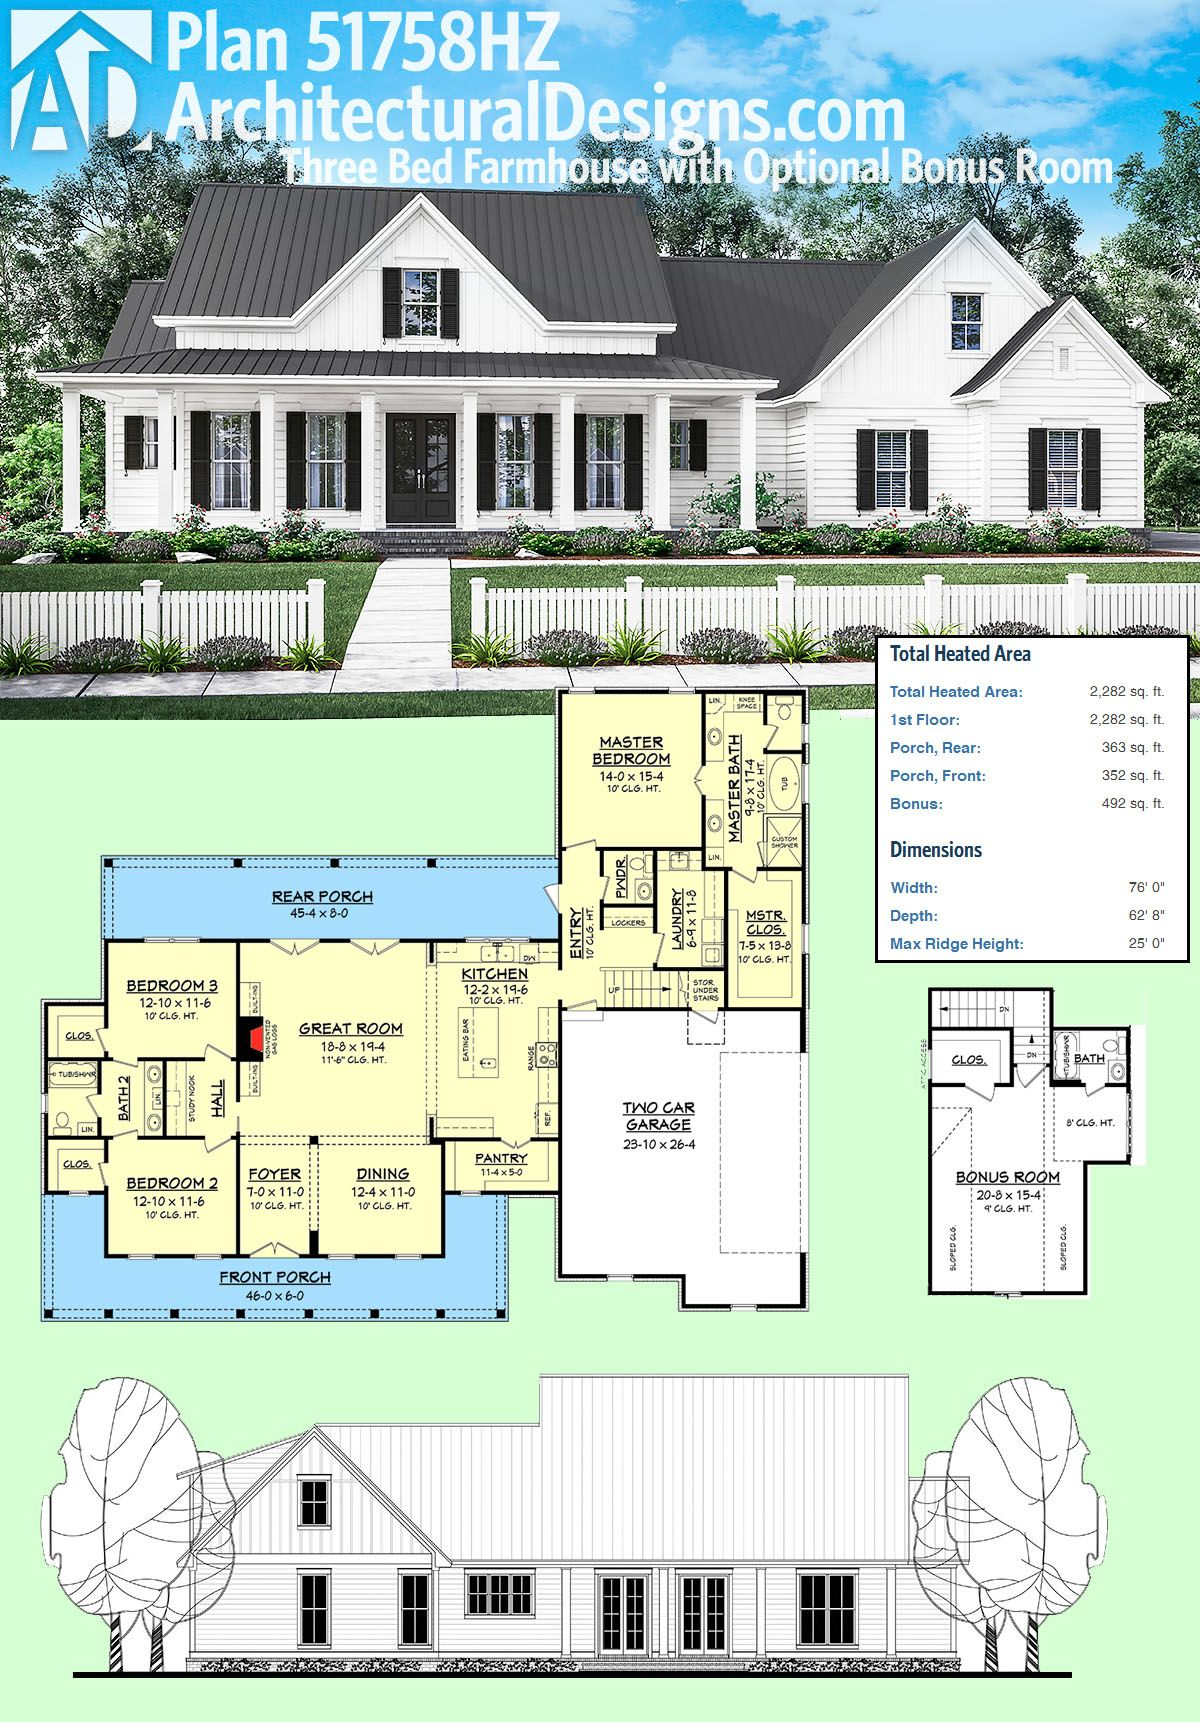 a837a777c1063cd5474402b7f20f7657 Top Result 52 Elegant House Plans with Finished Basement